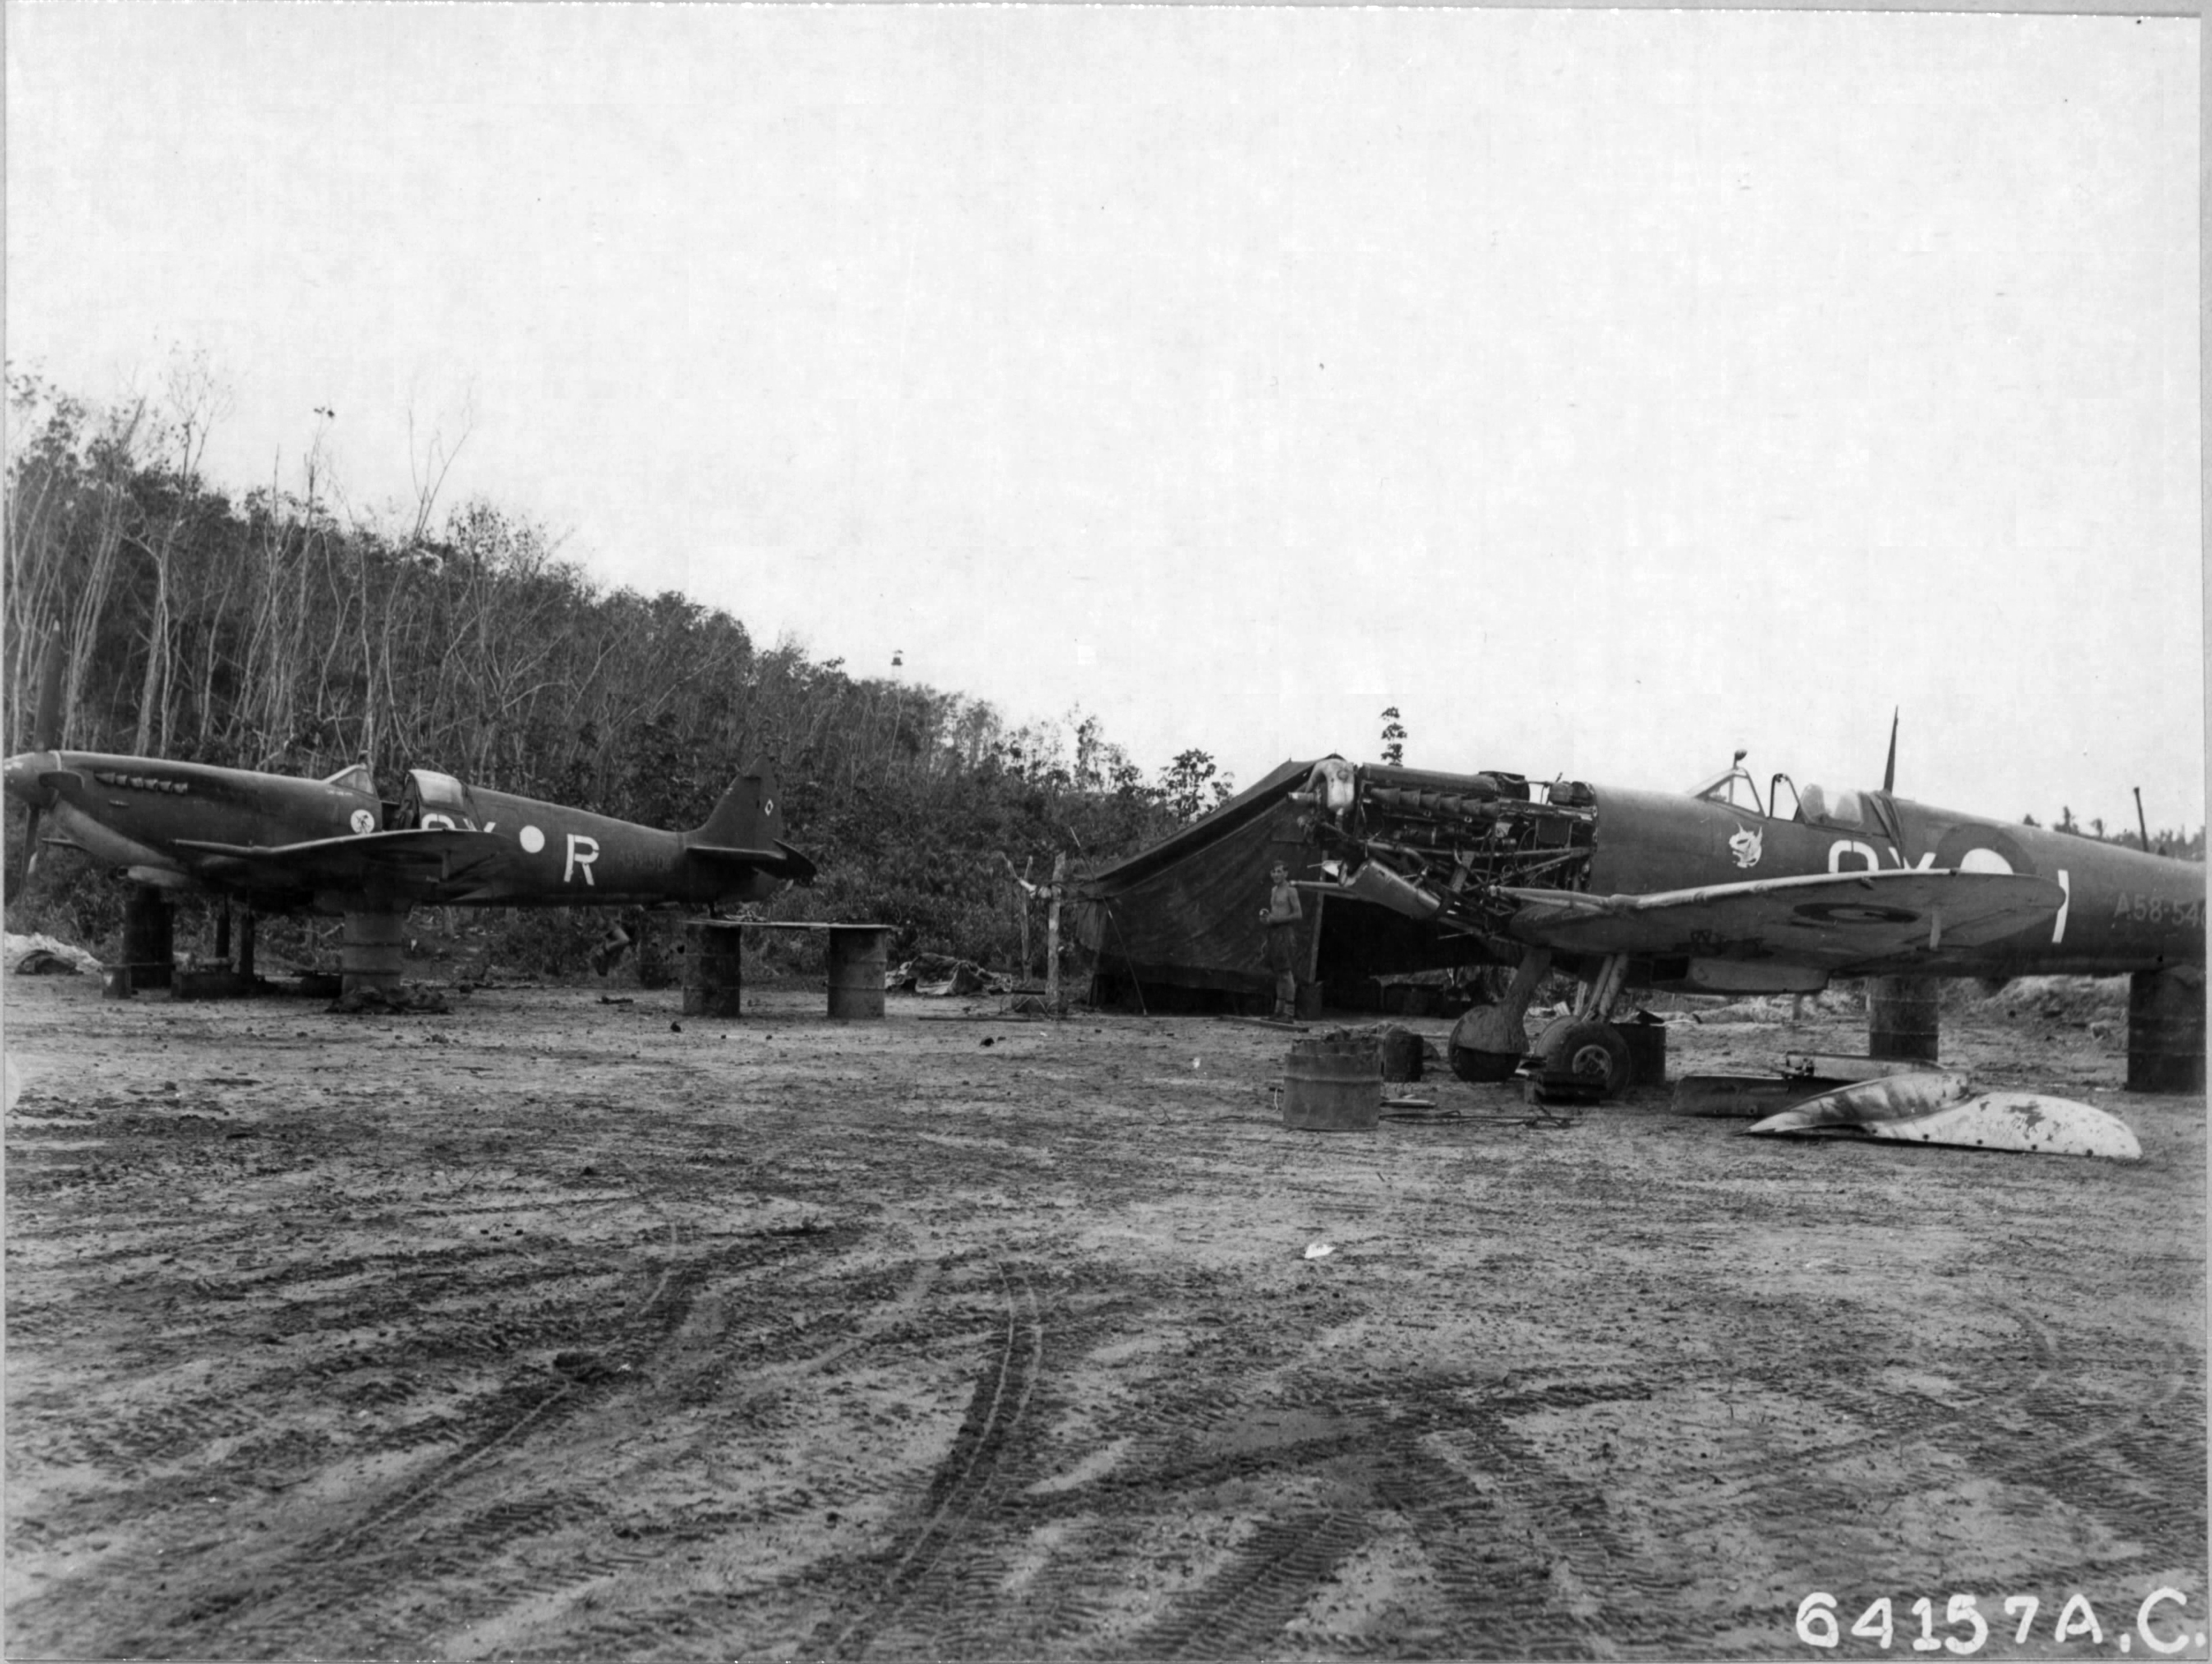 Spitfires MkVIII RAAF 452Sqn QYR and QYI at dispersal area on Sepingang Bali 5th Aug 1945 0